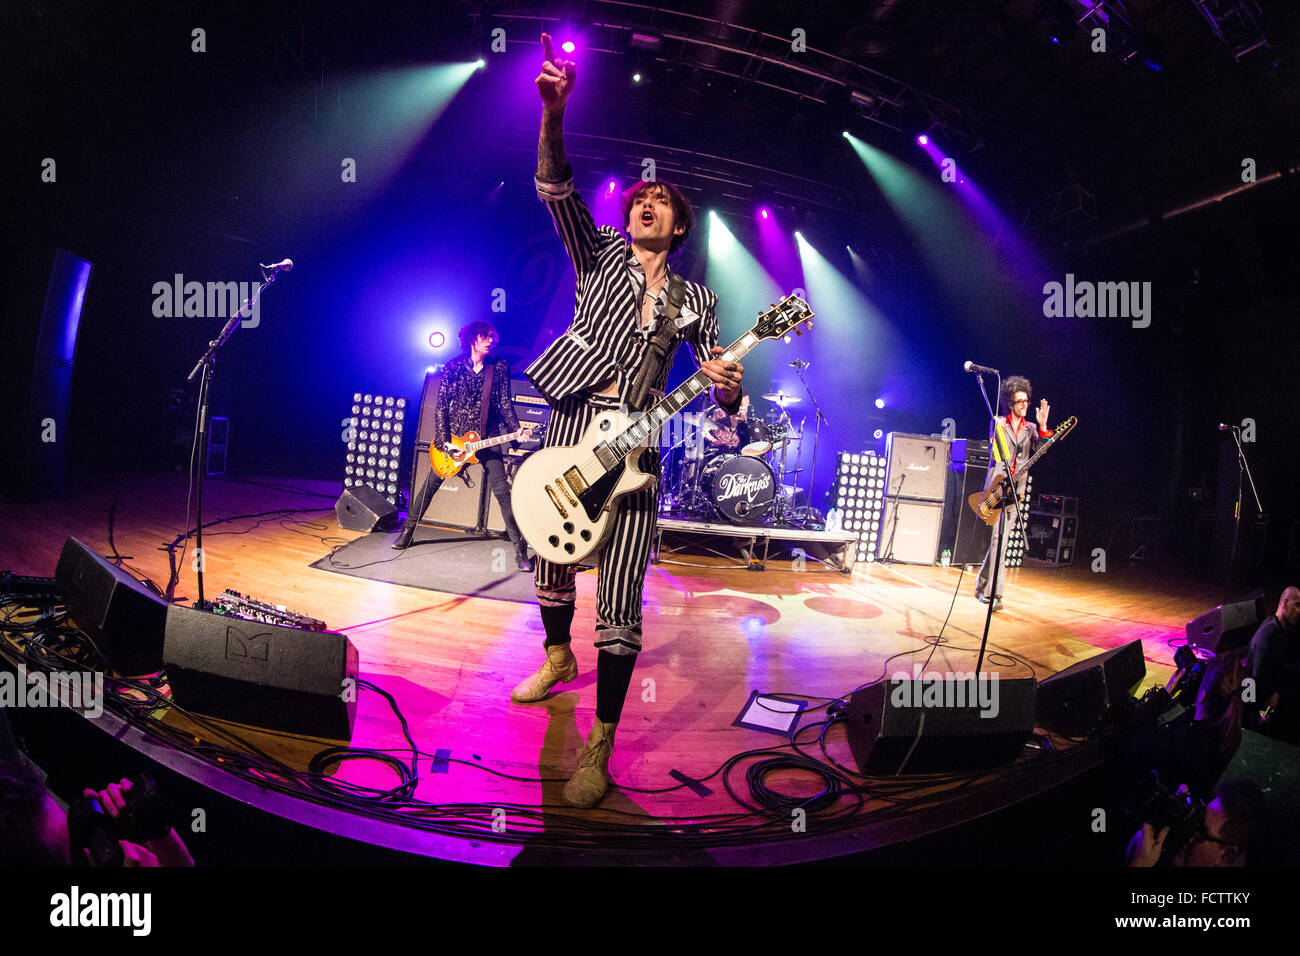 Milan Italy. 24th January 2016. The British rock band The Darkness performs live on stage at the music club Alcatraz - Stock Image